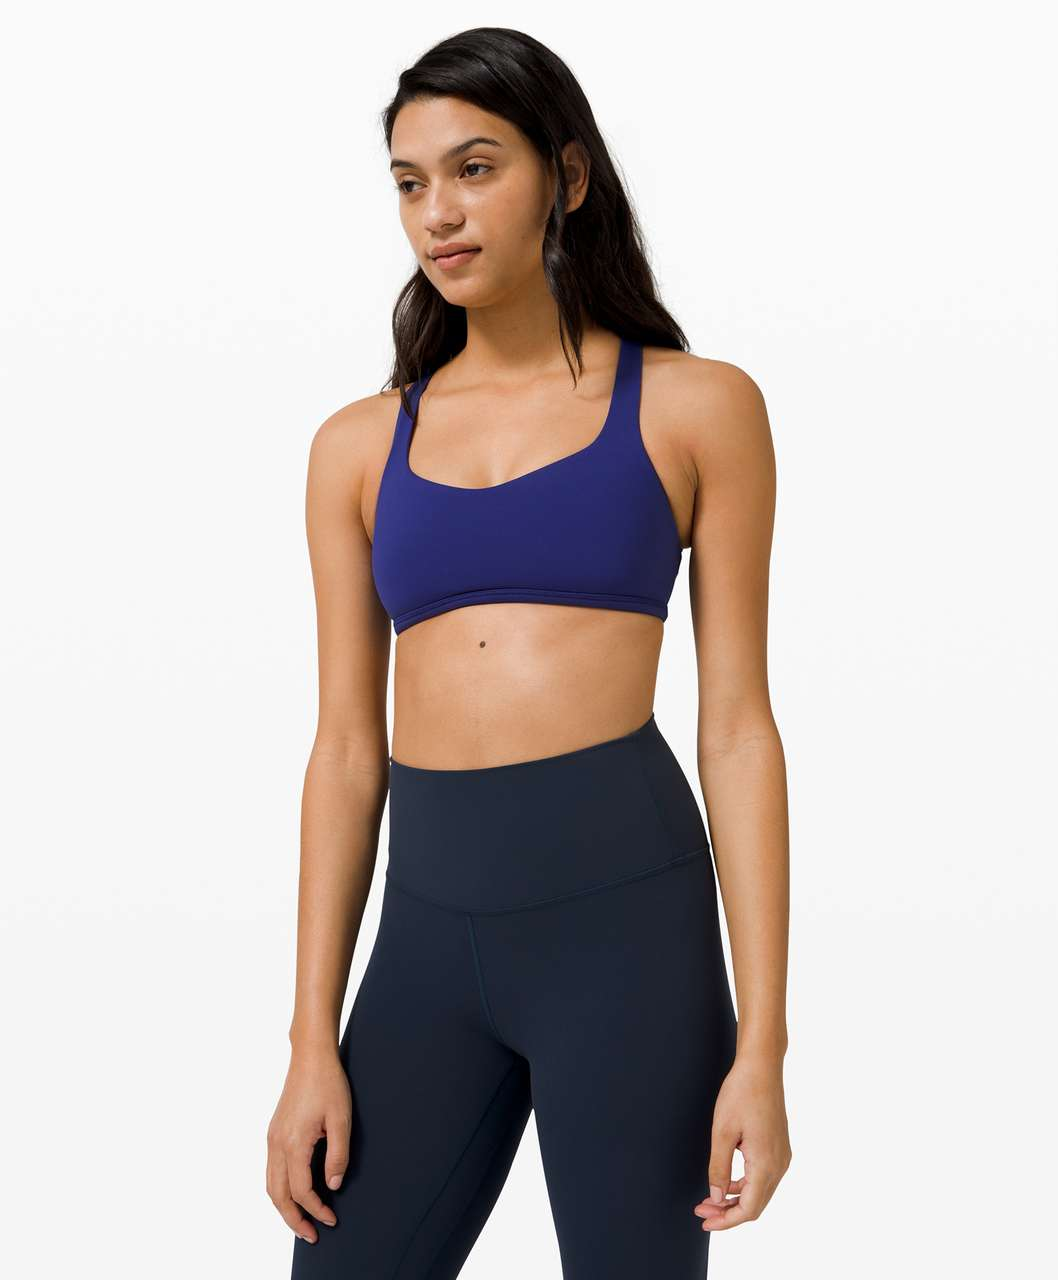 Lululemon Free To Be Bra Wild*Light Support, A/B Cup - Larkspur